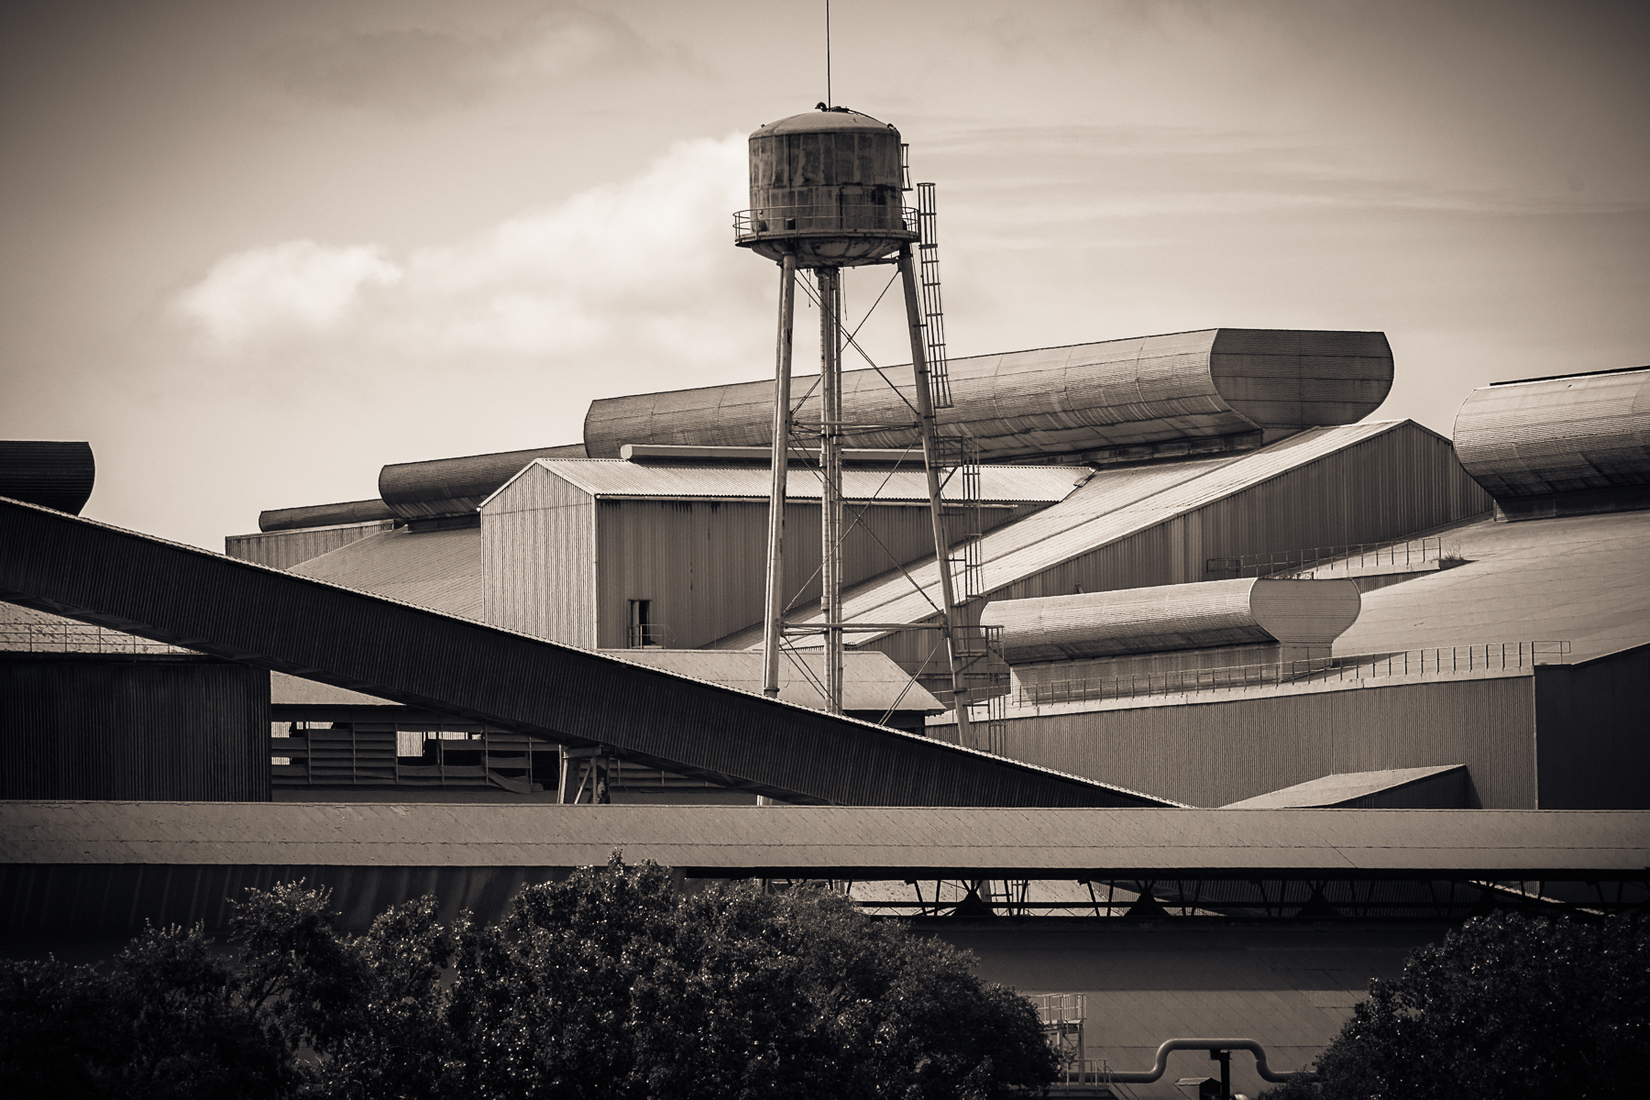 Industrial Sheeler Shapes and Shadows No. 1 (Duotone)